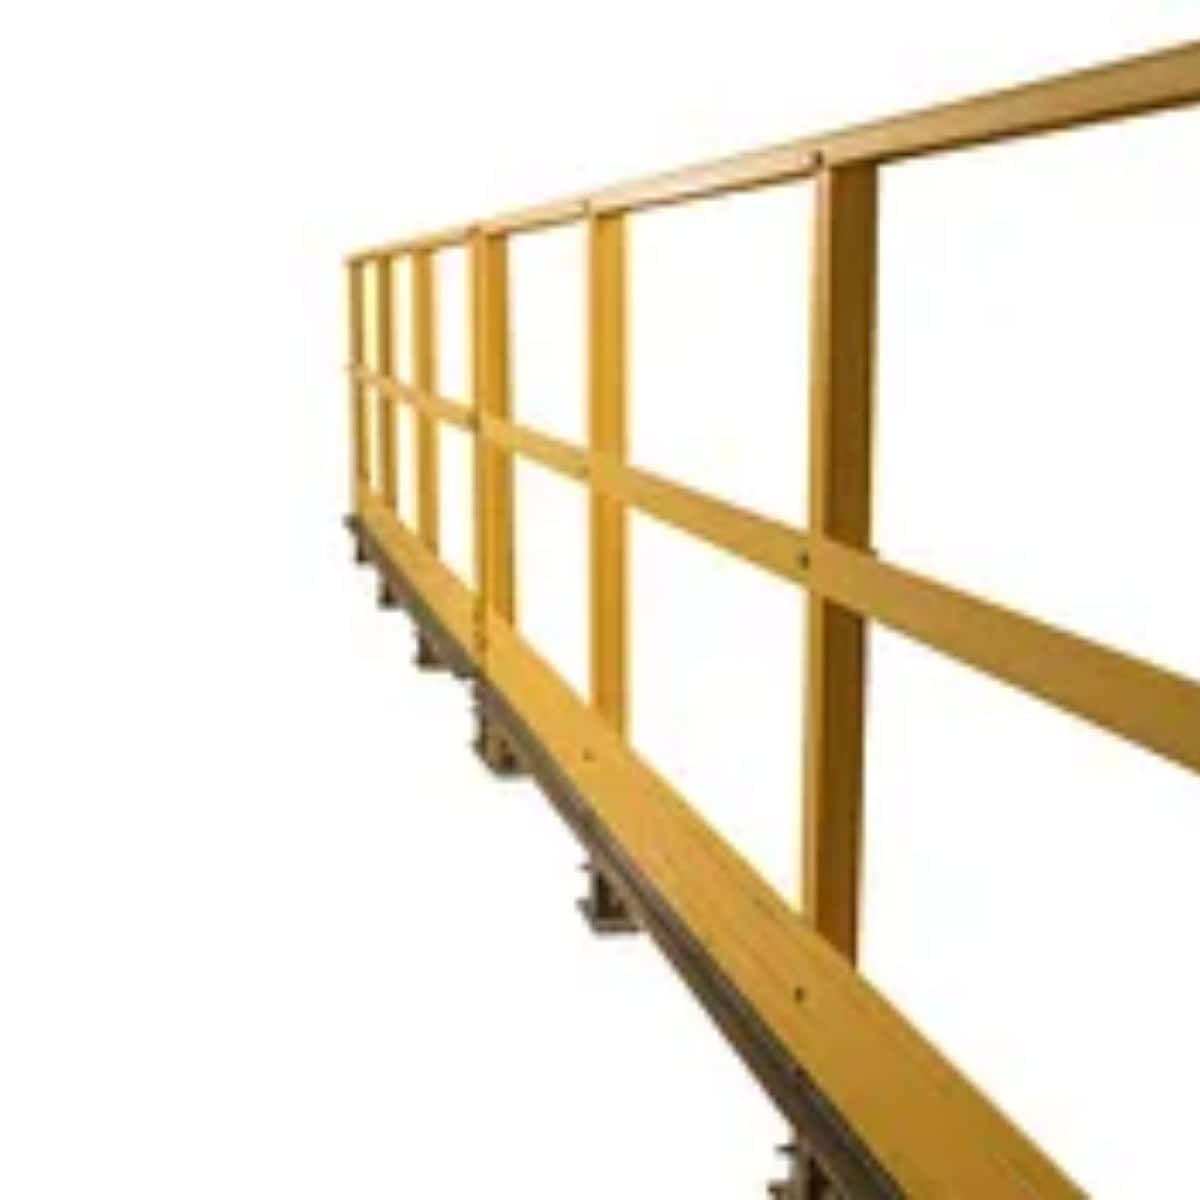 FRP Hand Rails, FRP hand rail manufacturer in india